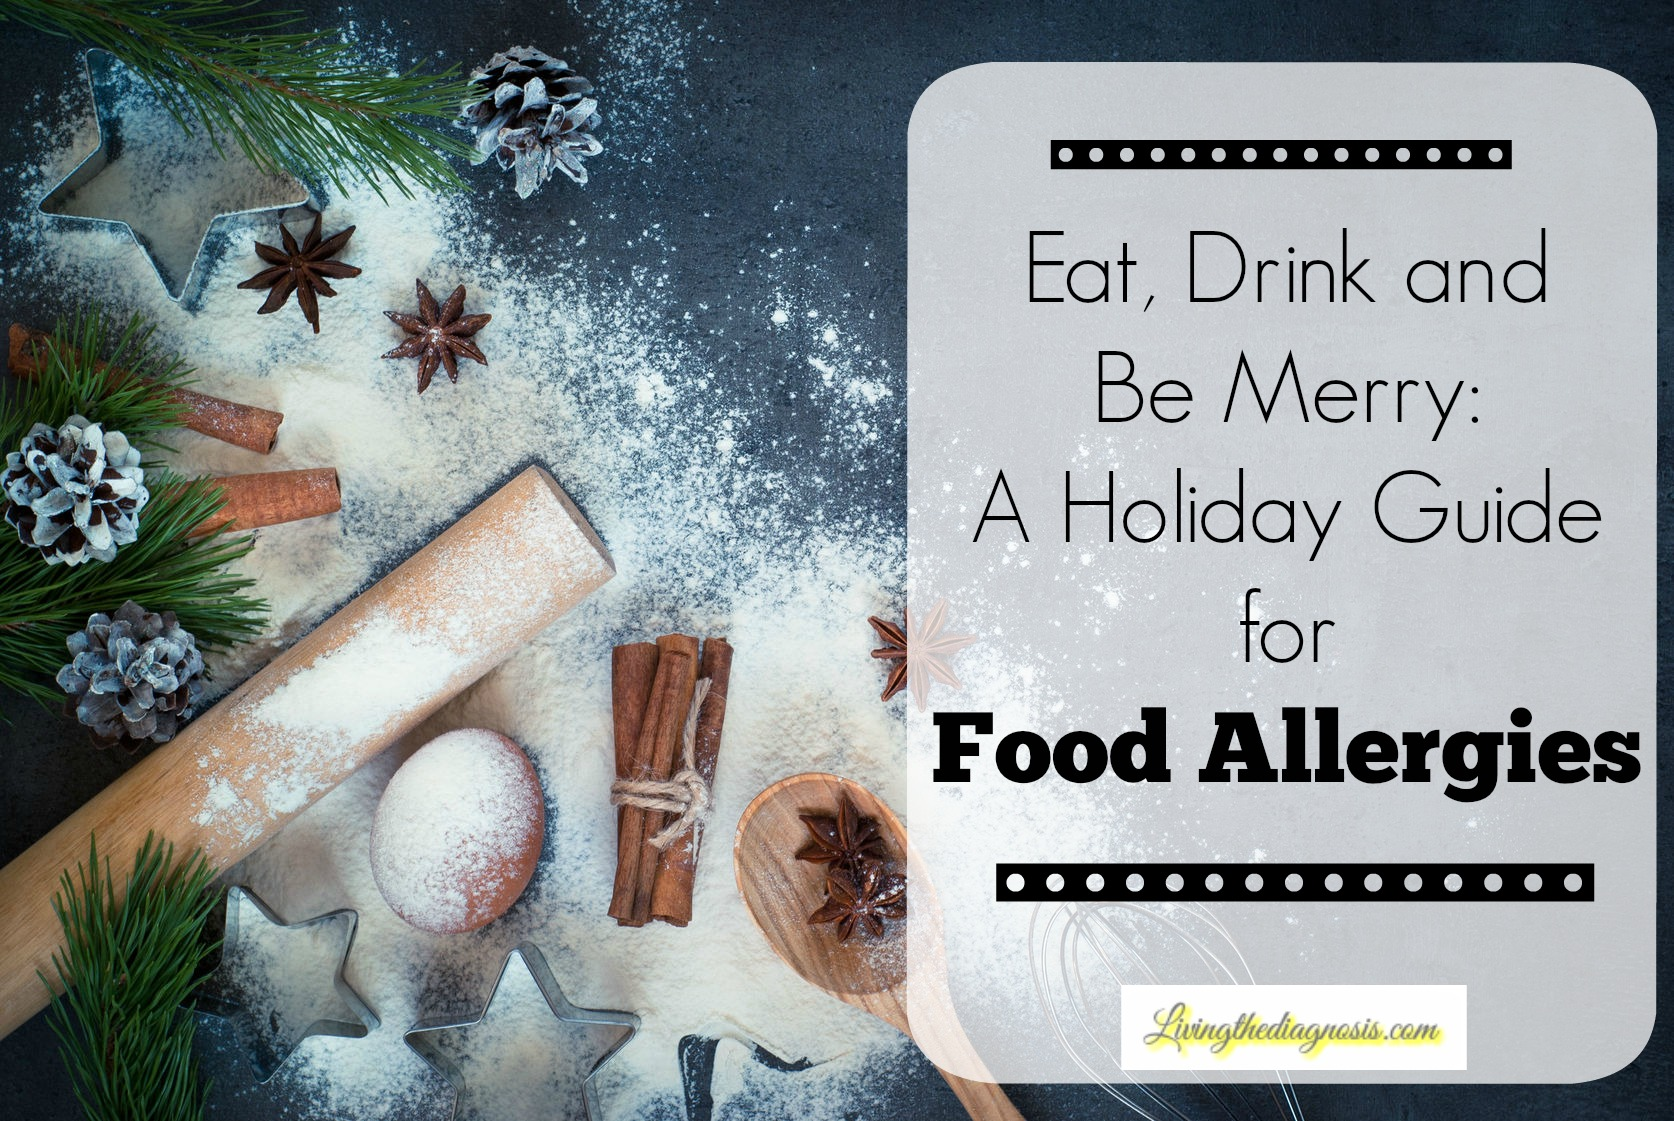 A Holiday Guide for Food Allergies